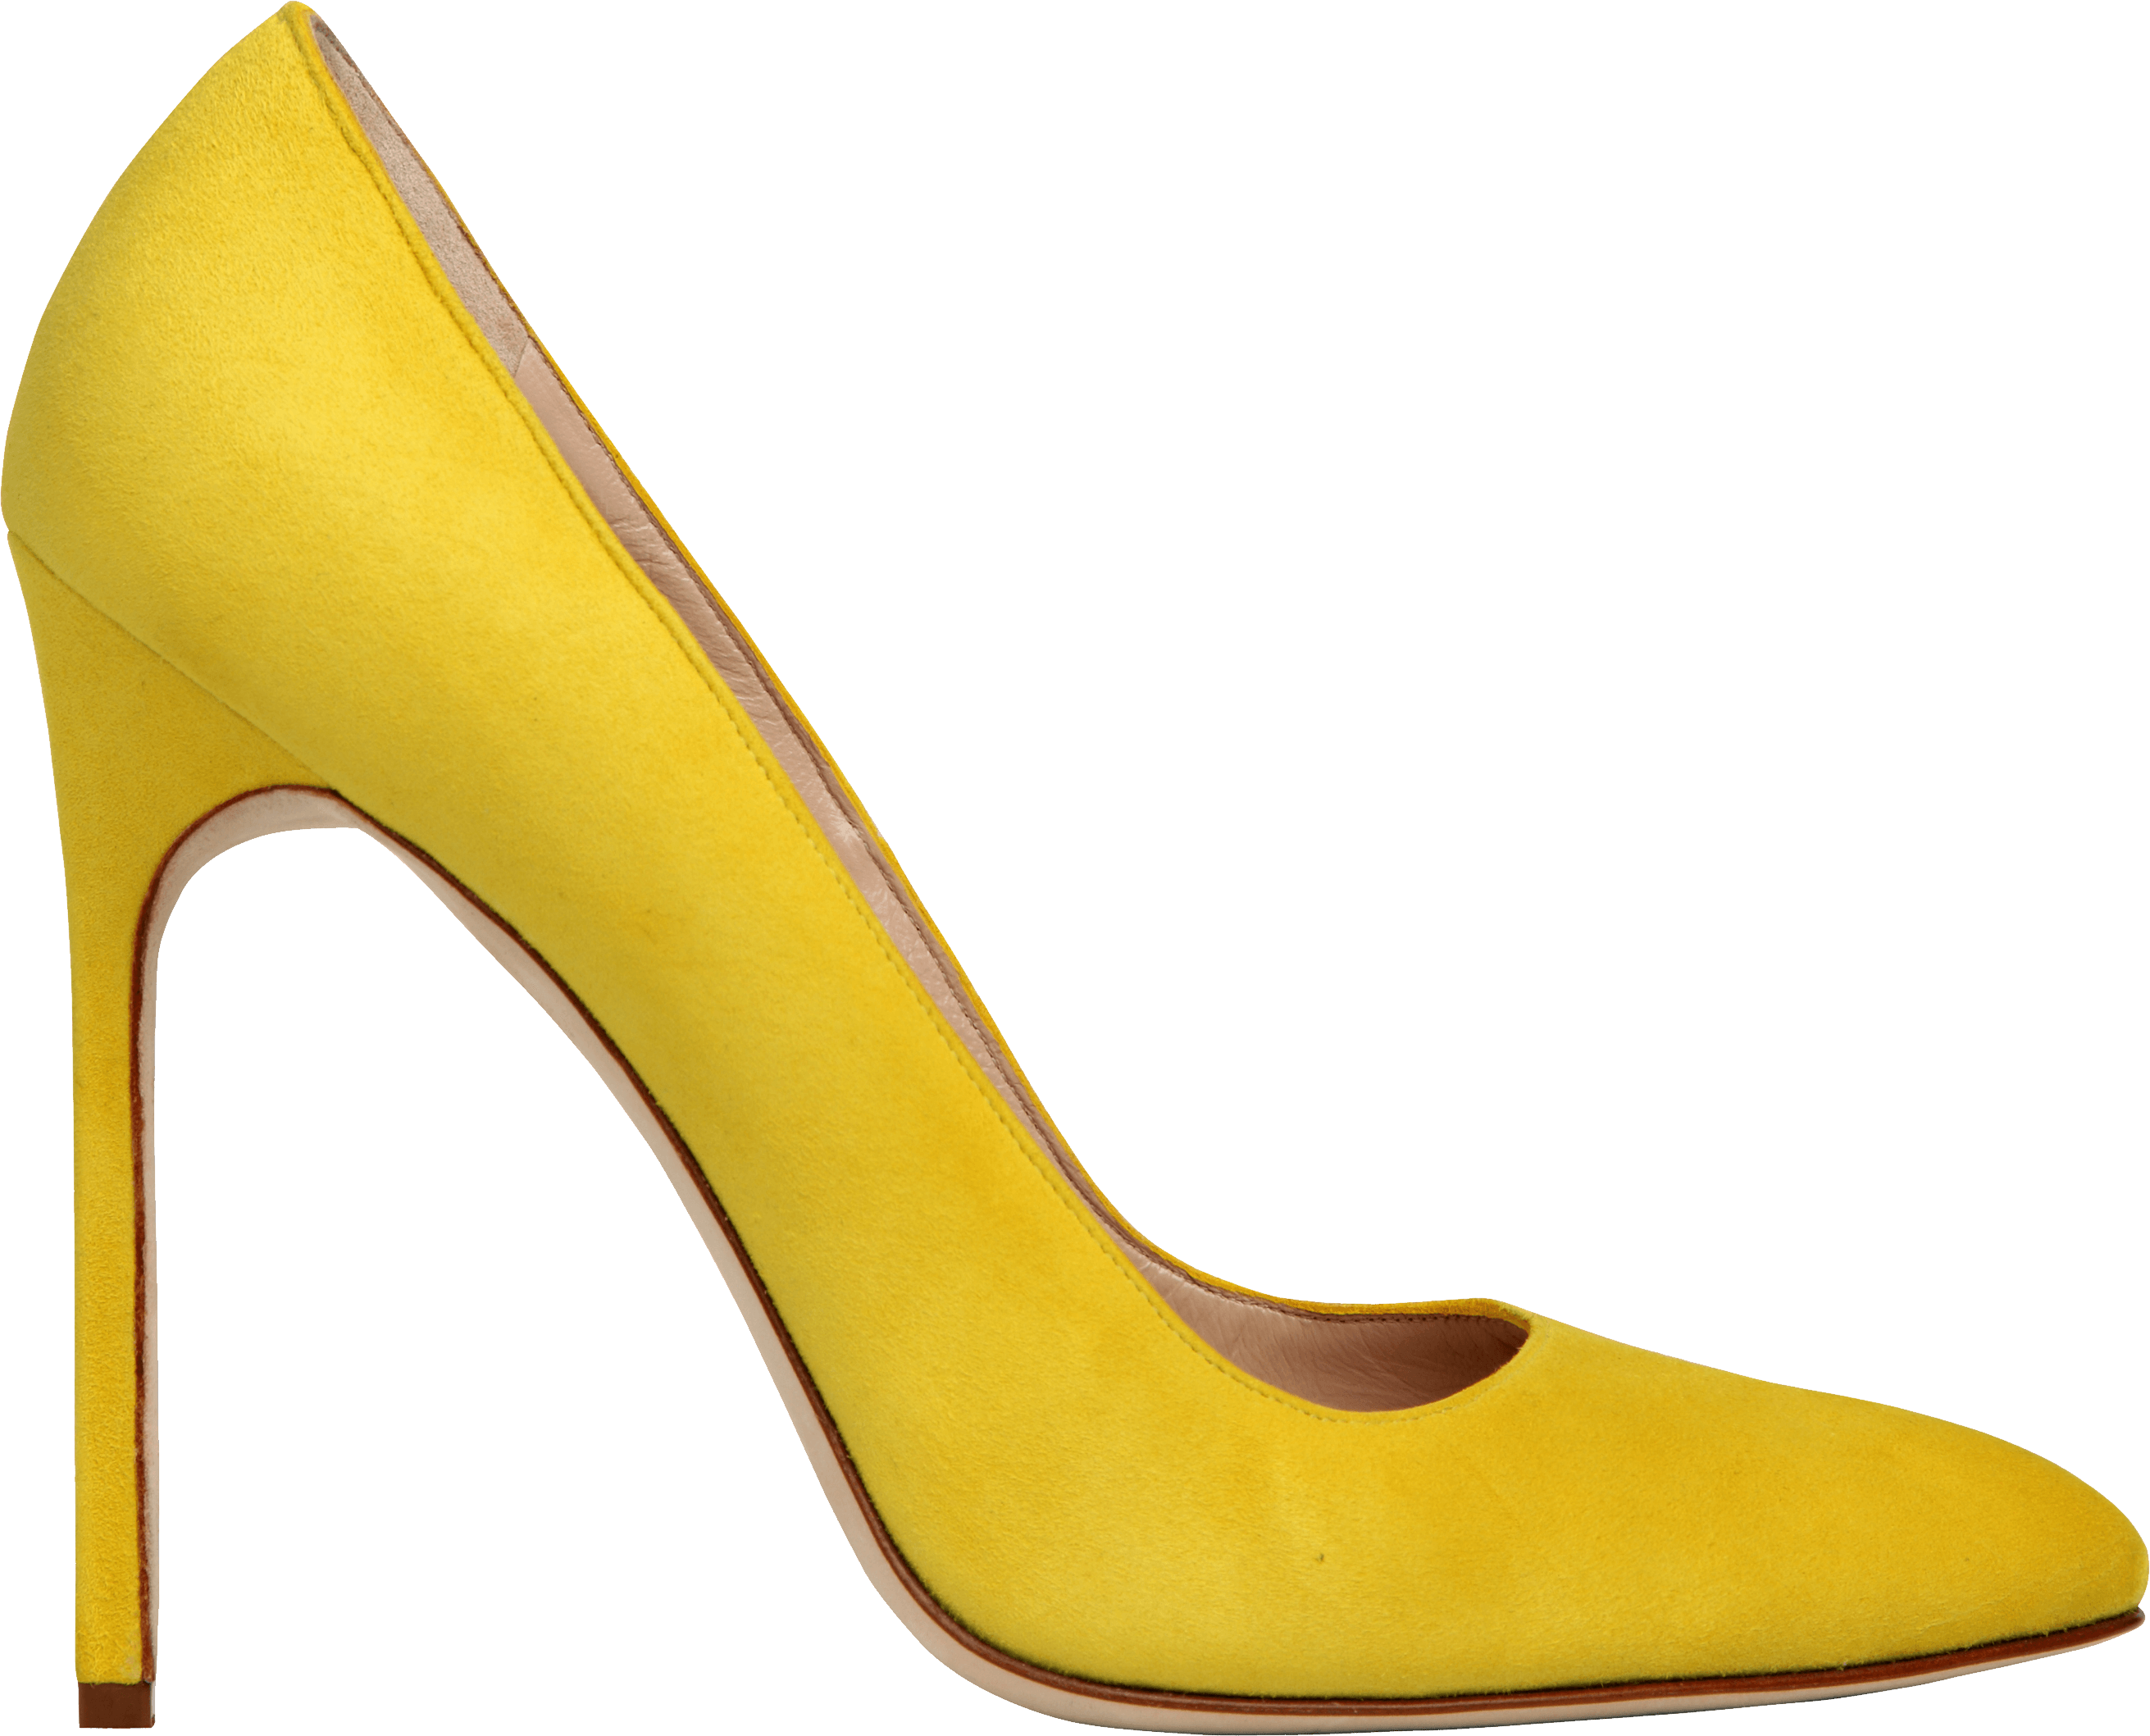 download women shoes png image png image pngimg #29921